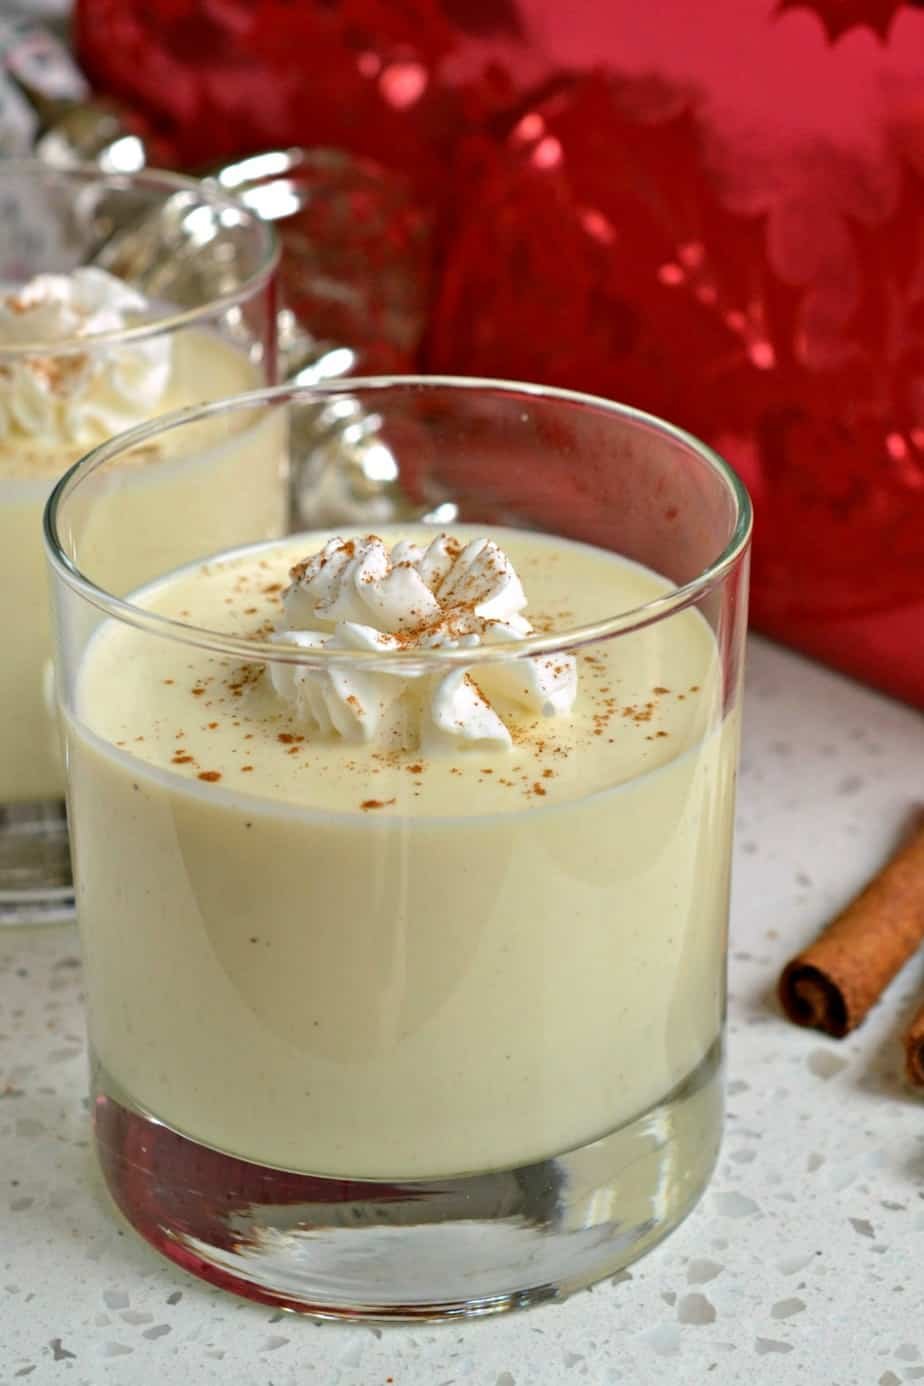 It is that time of the year again and this luscious Homemade Eggnog Recipe comes together quickly.